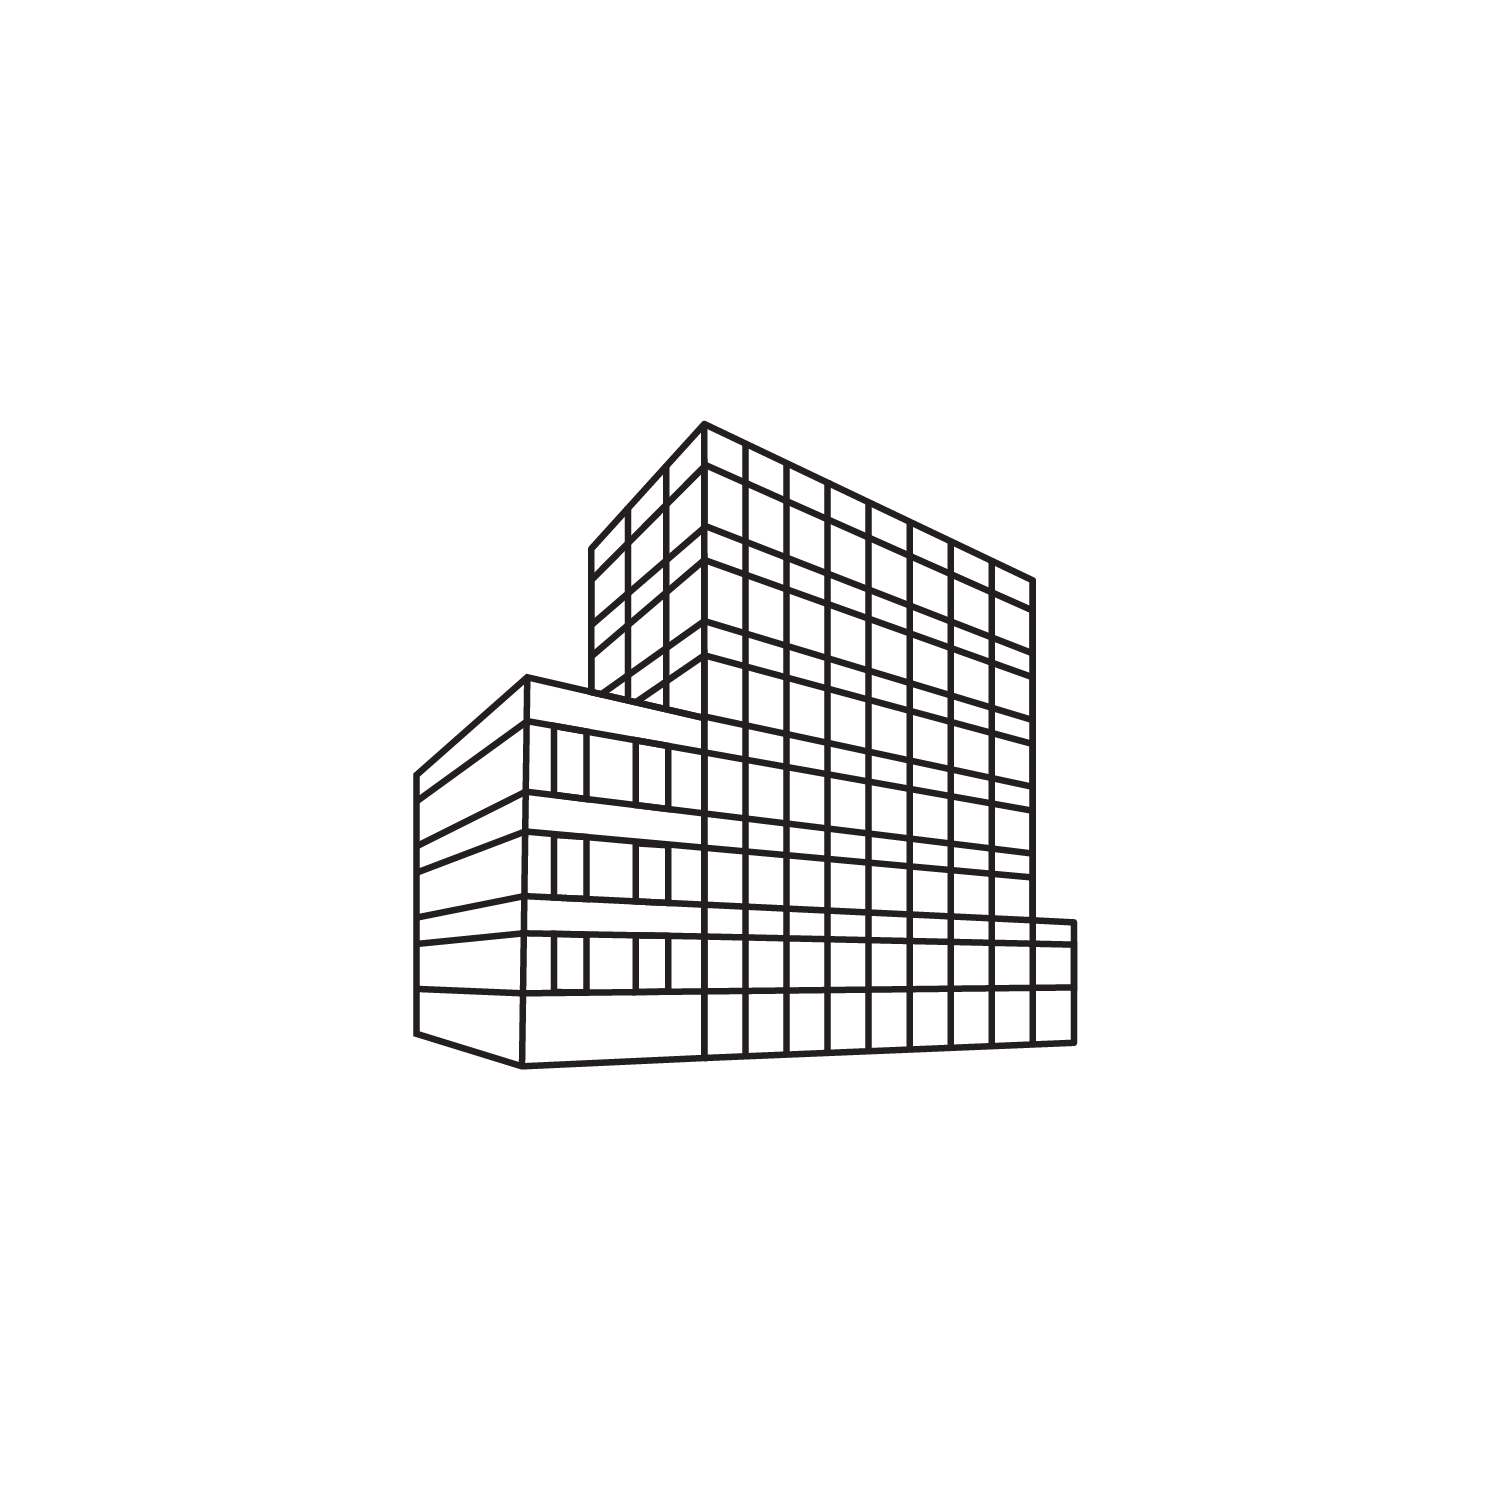 OurDomain Amsterdam Diemen - White drawing of the building with transparent background